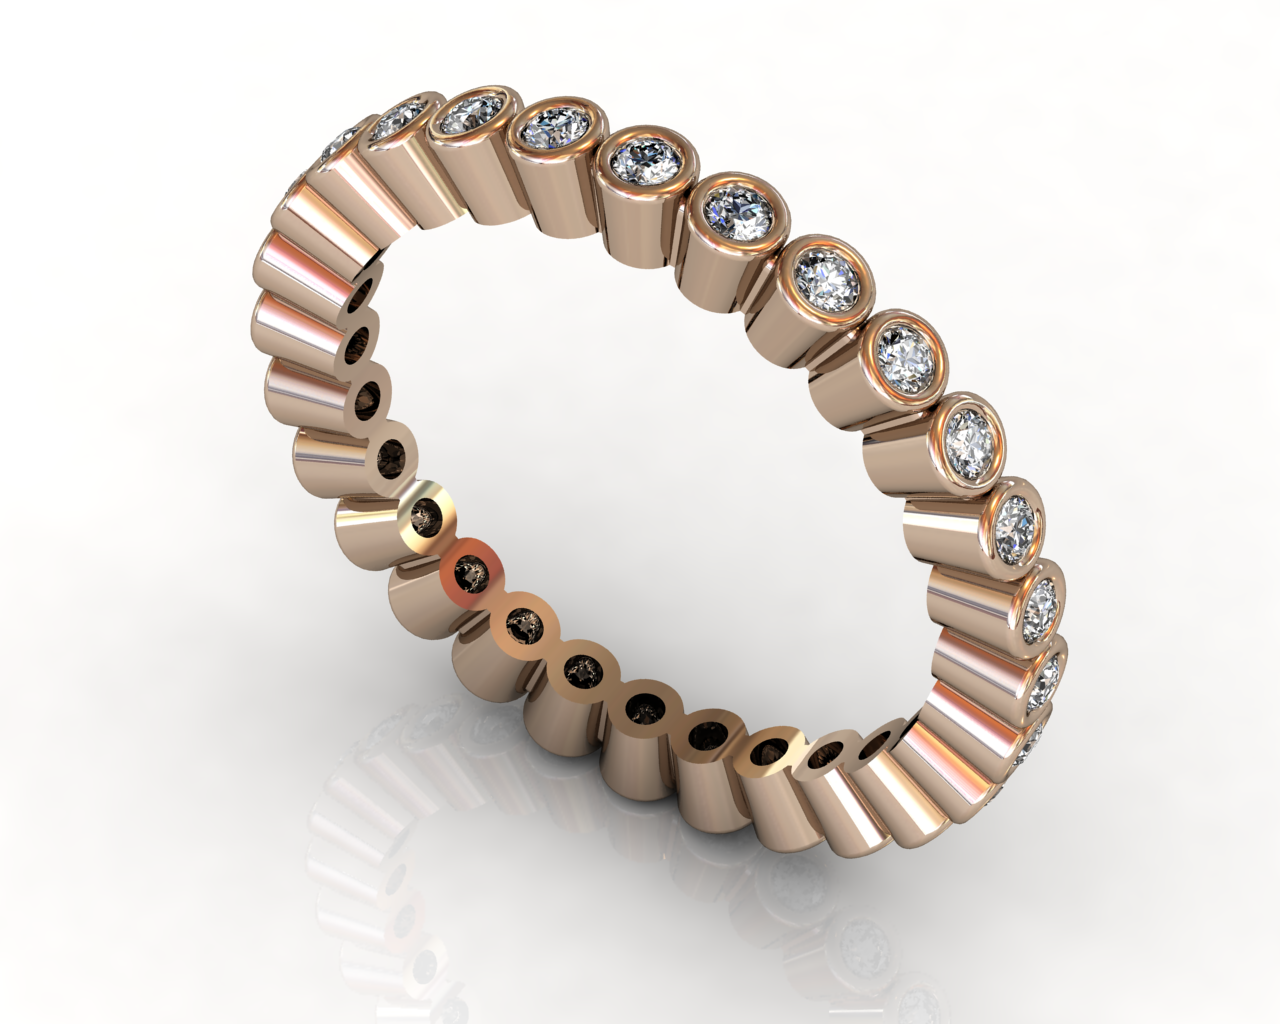 Wedding Bands Ladies South Bay Gold Torrance Bezel 18 Stone 0.31 TCW Diamonds 2.52g 18kt Rose Gold